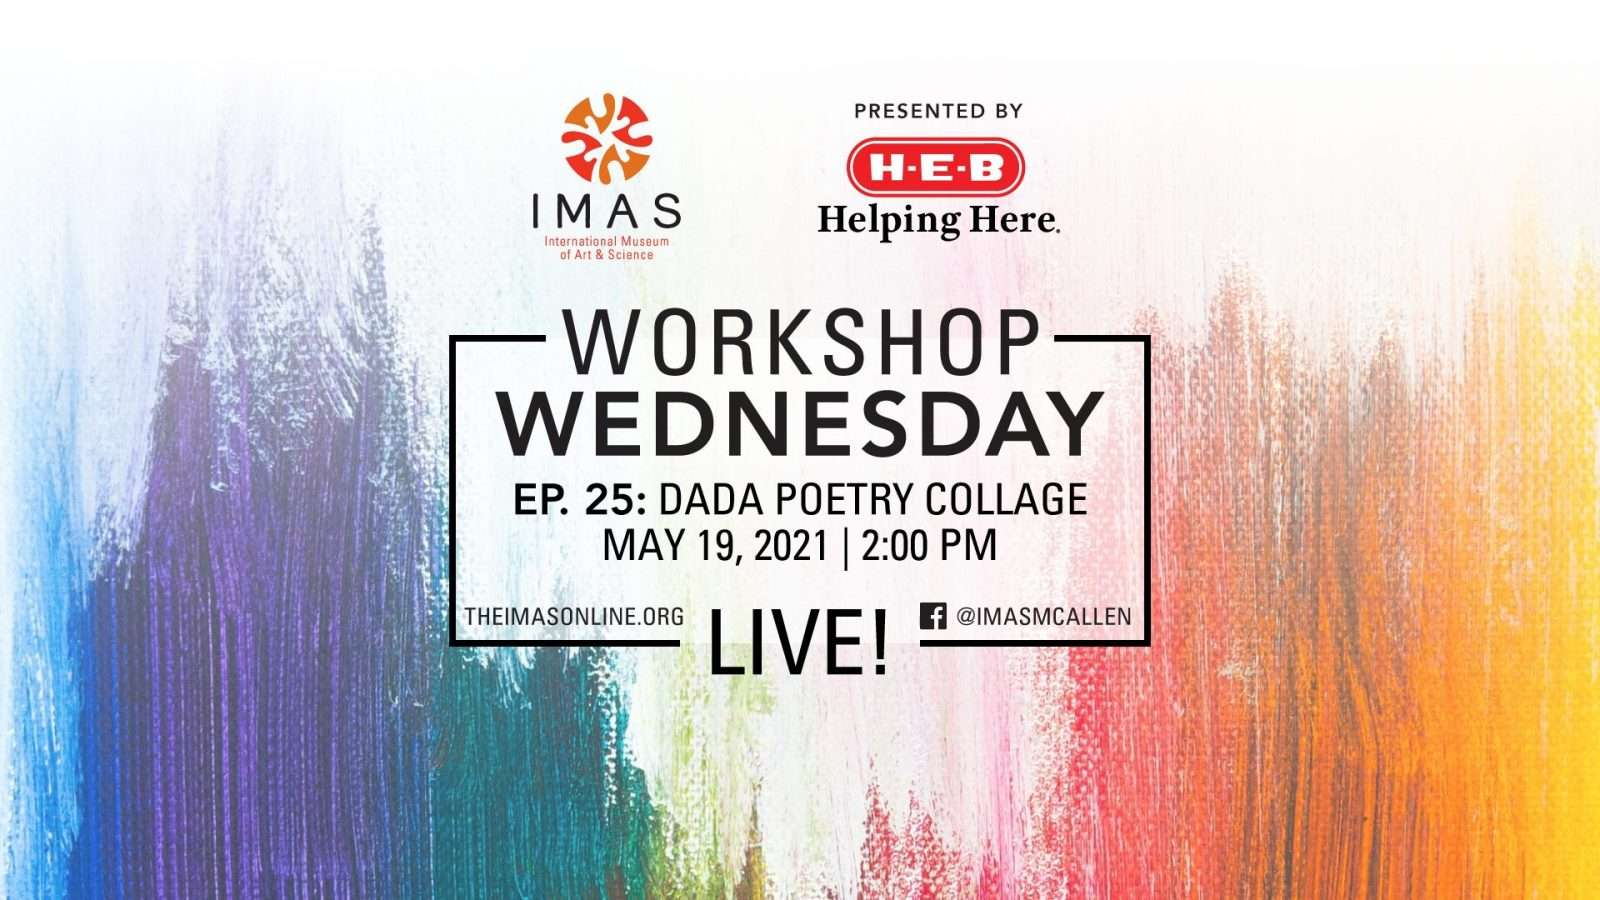 Workshop Wednesday Live